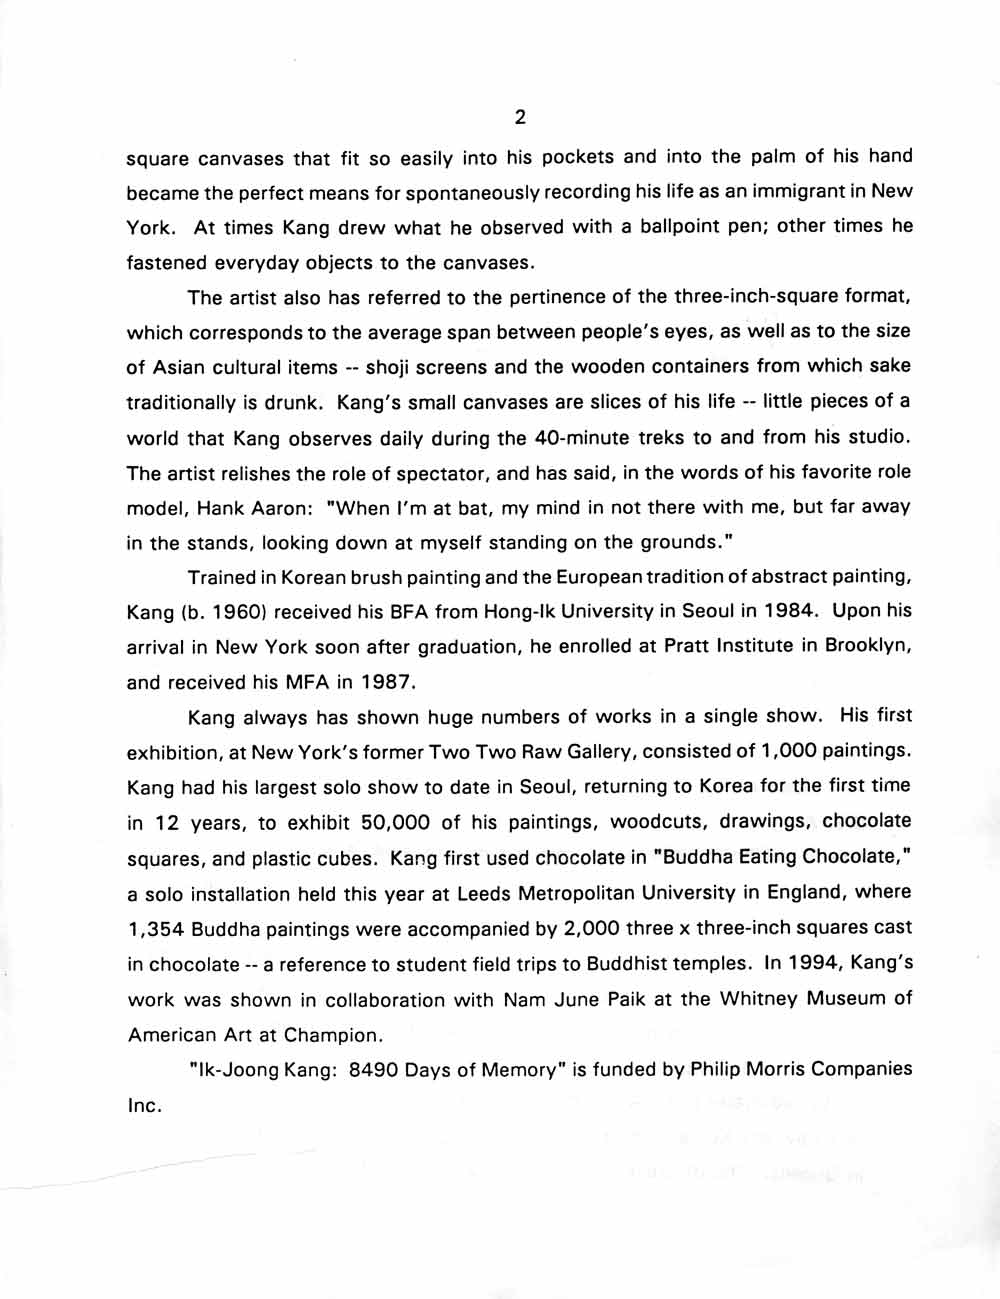 8490 Days press release, pg 2